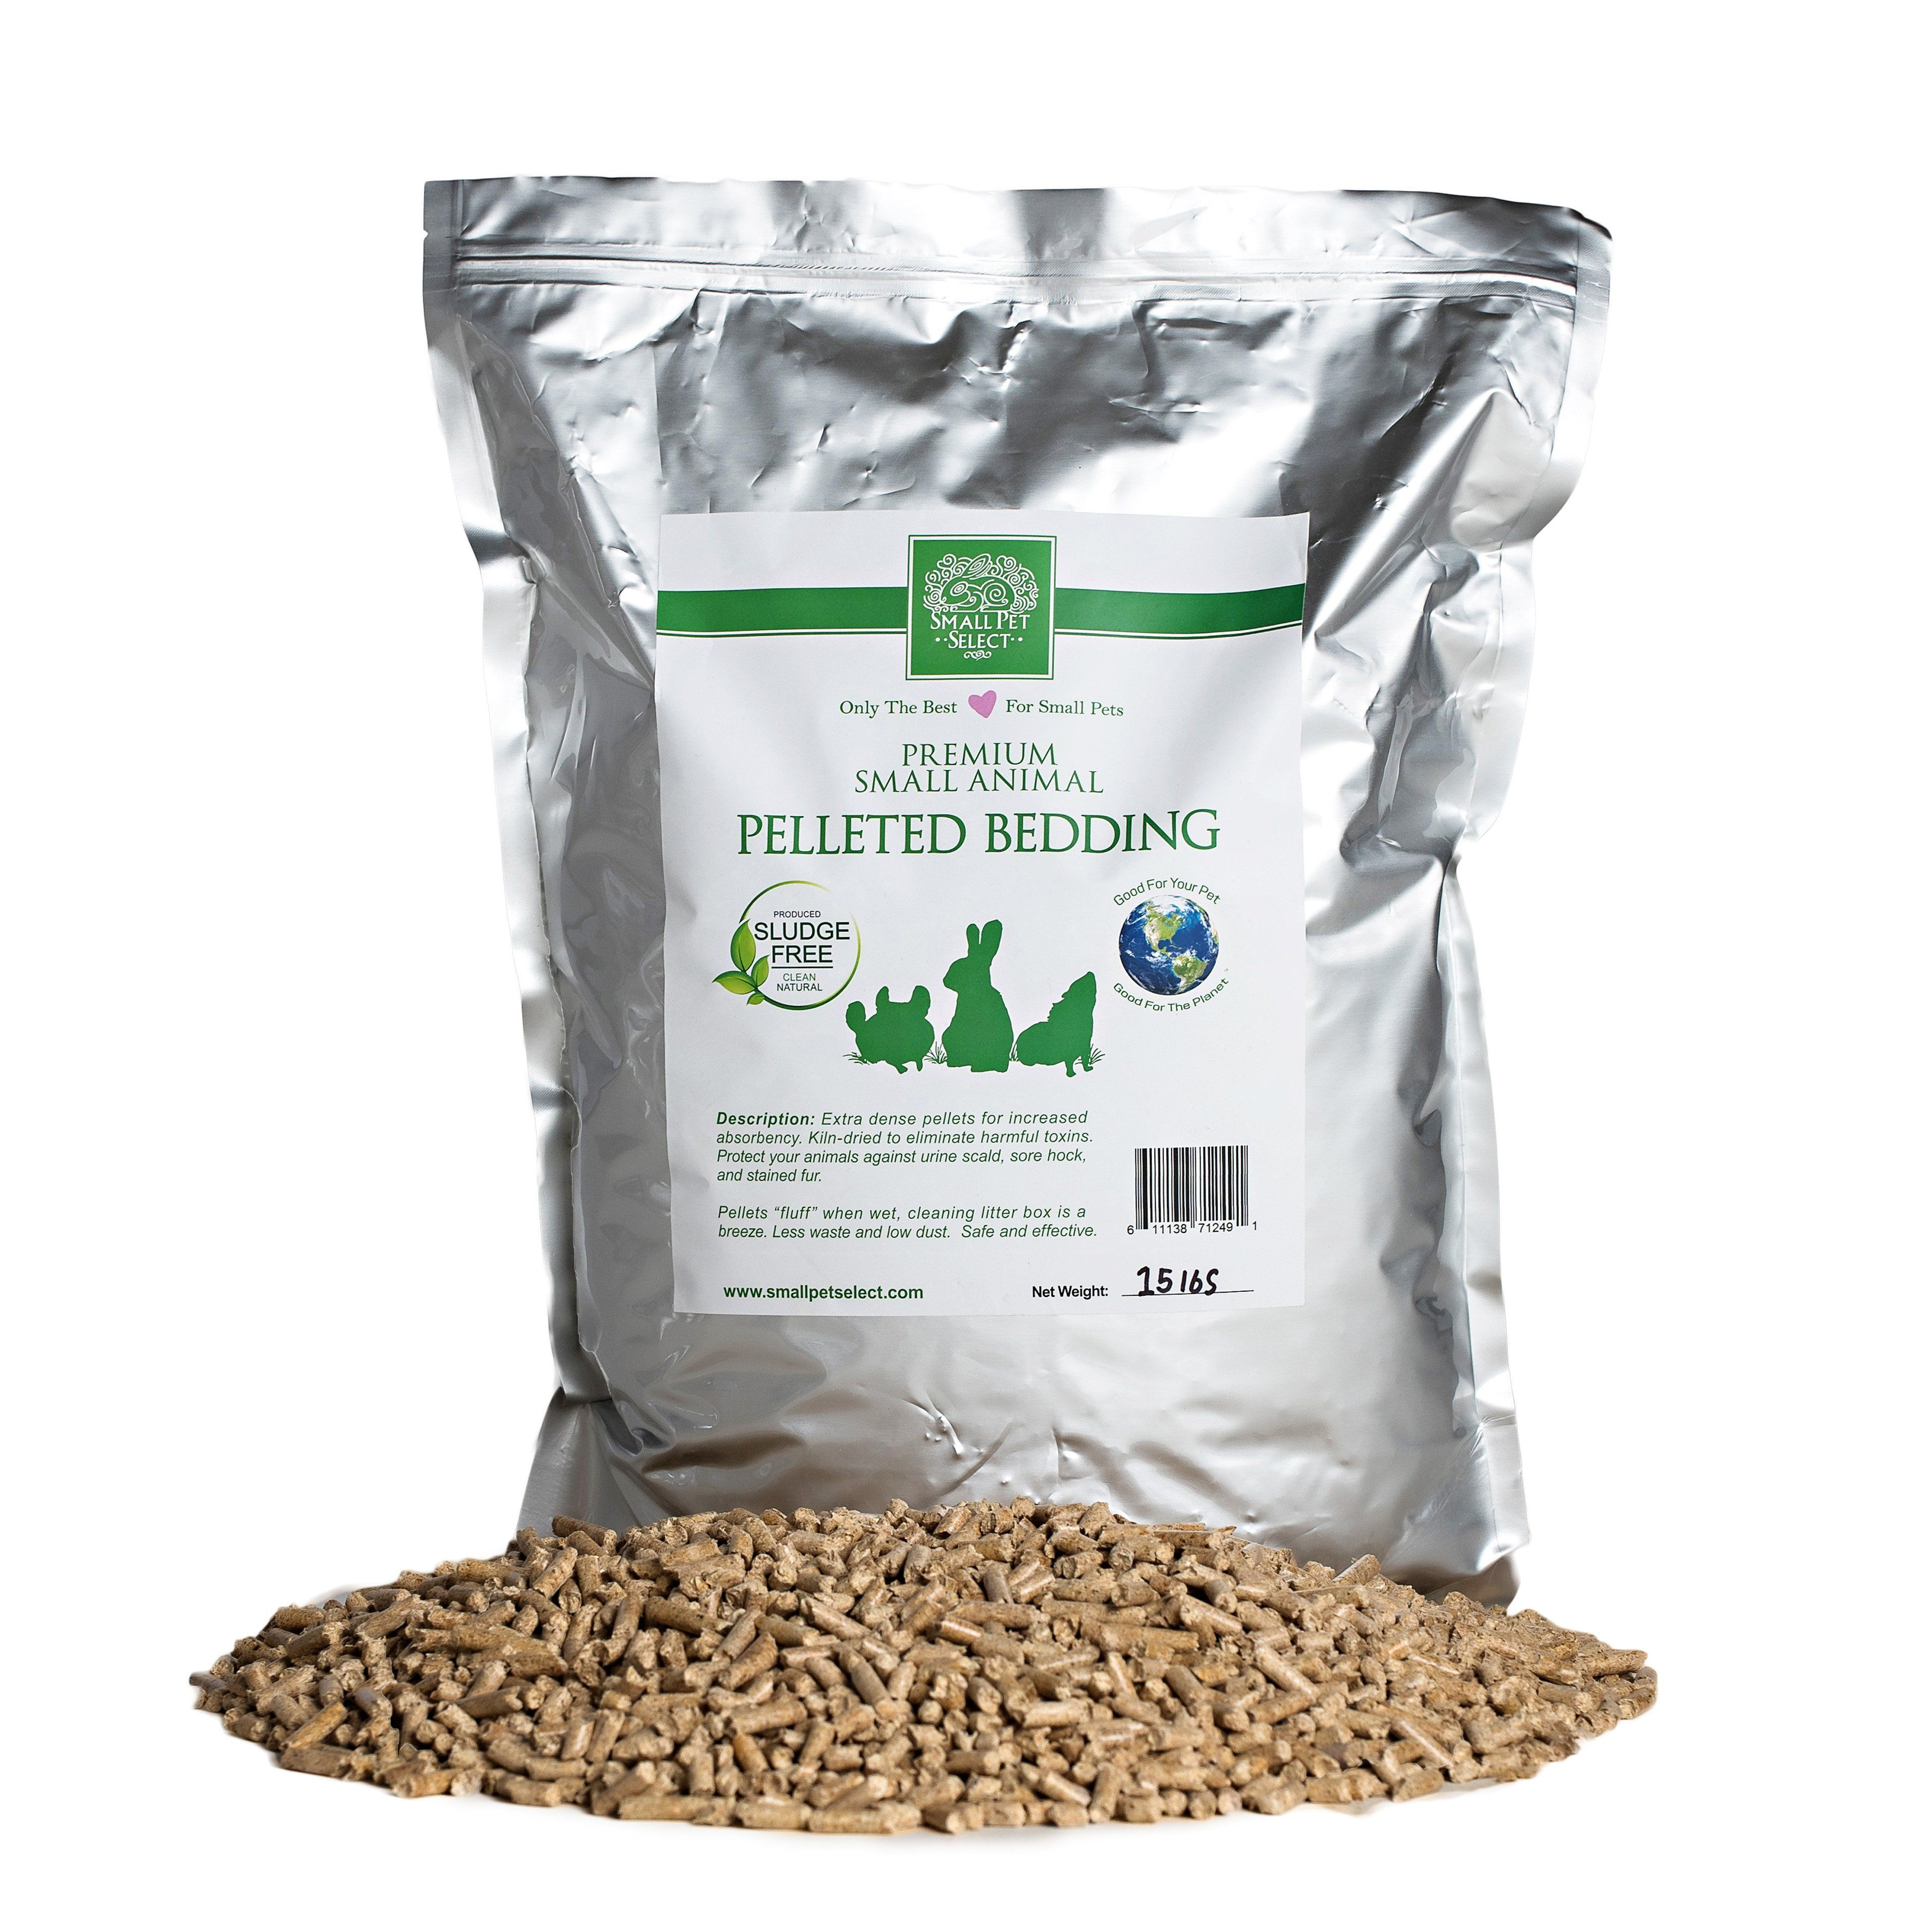 Pine Pellet Litter Bedding Safe Cleaning Products Pet Beds Kiln Dry